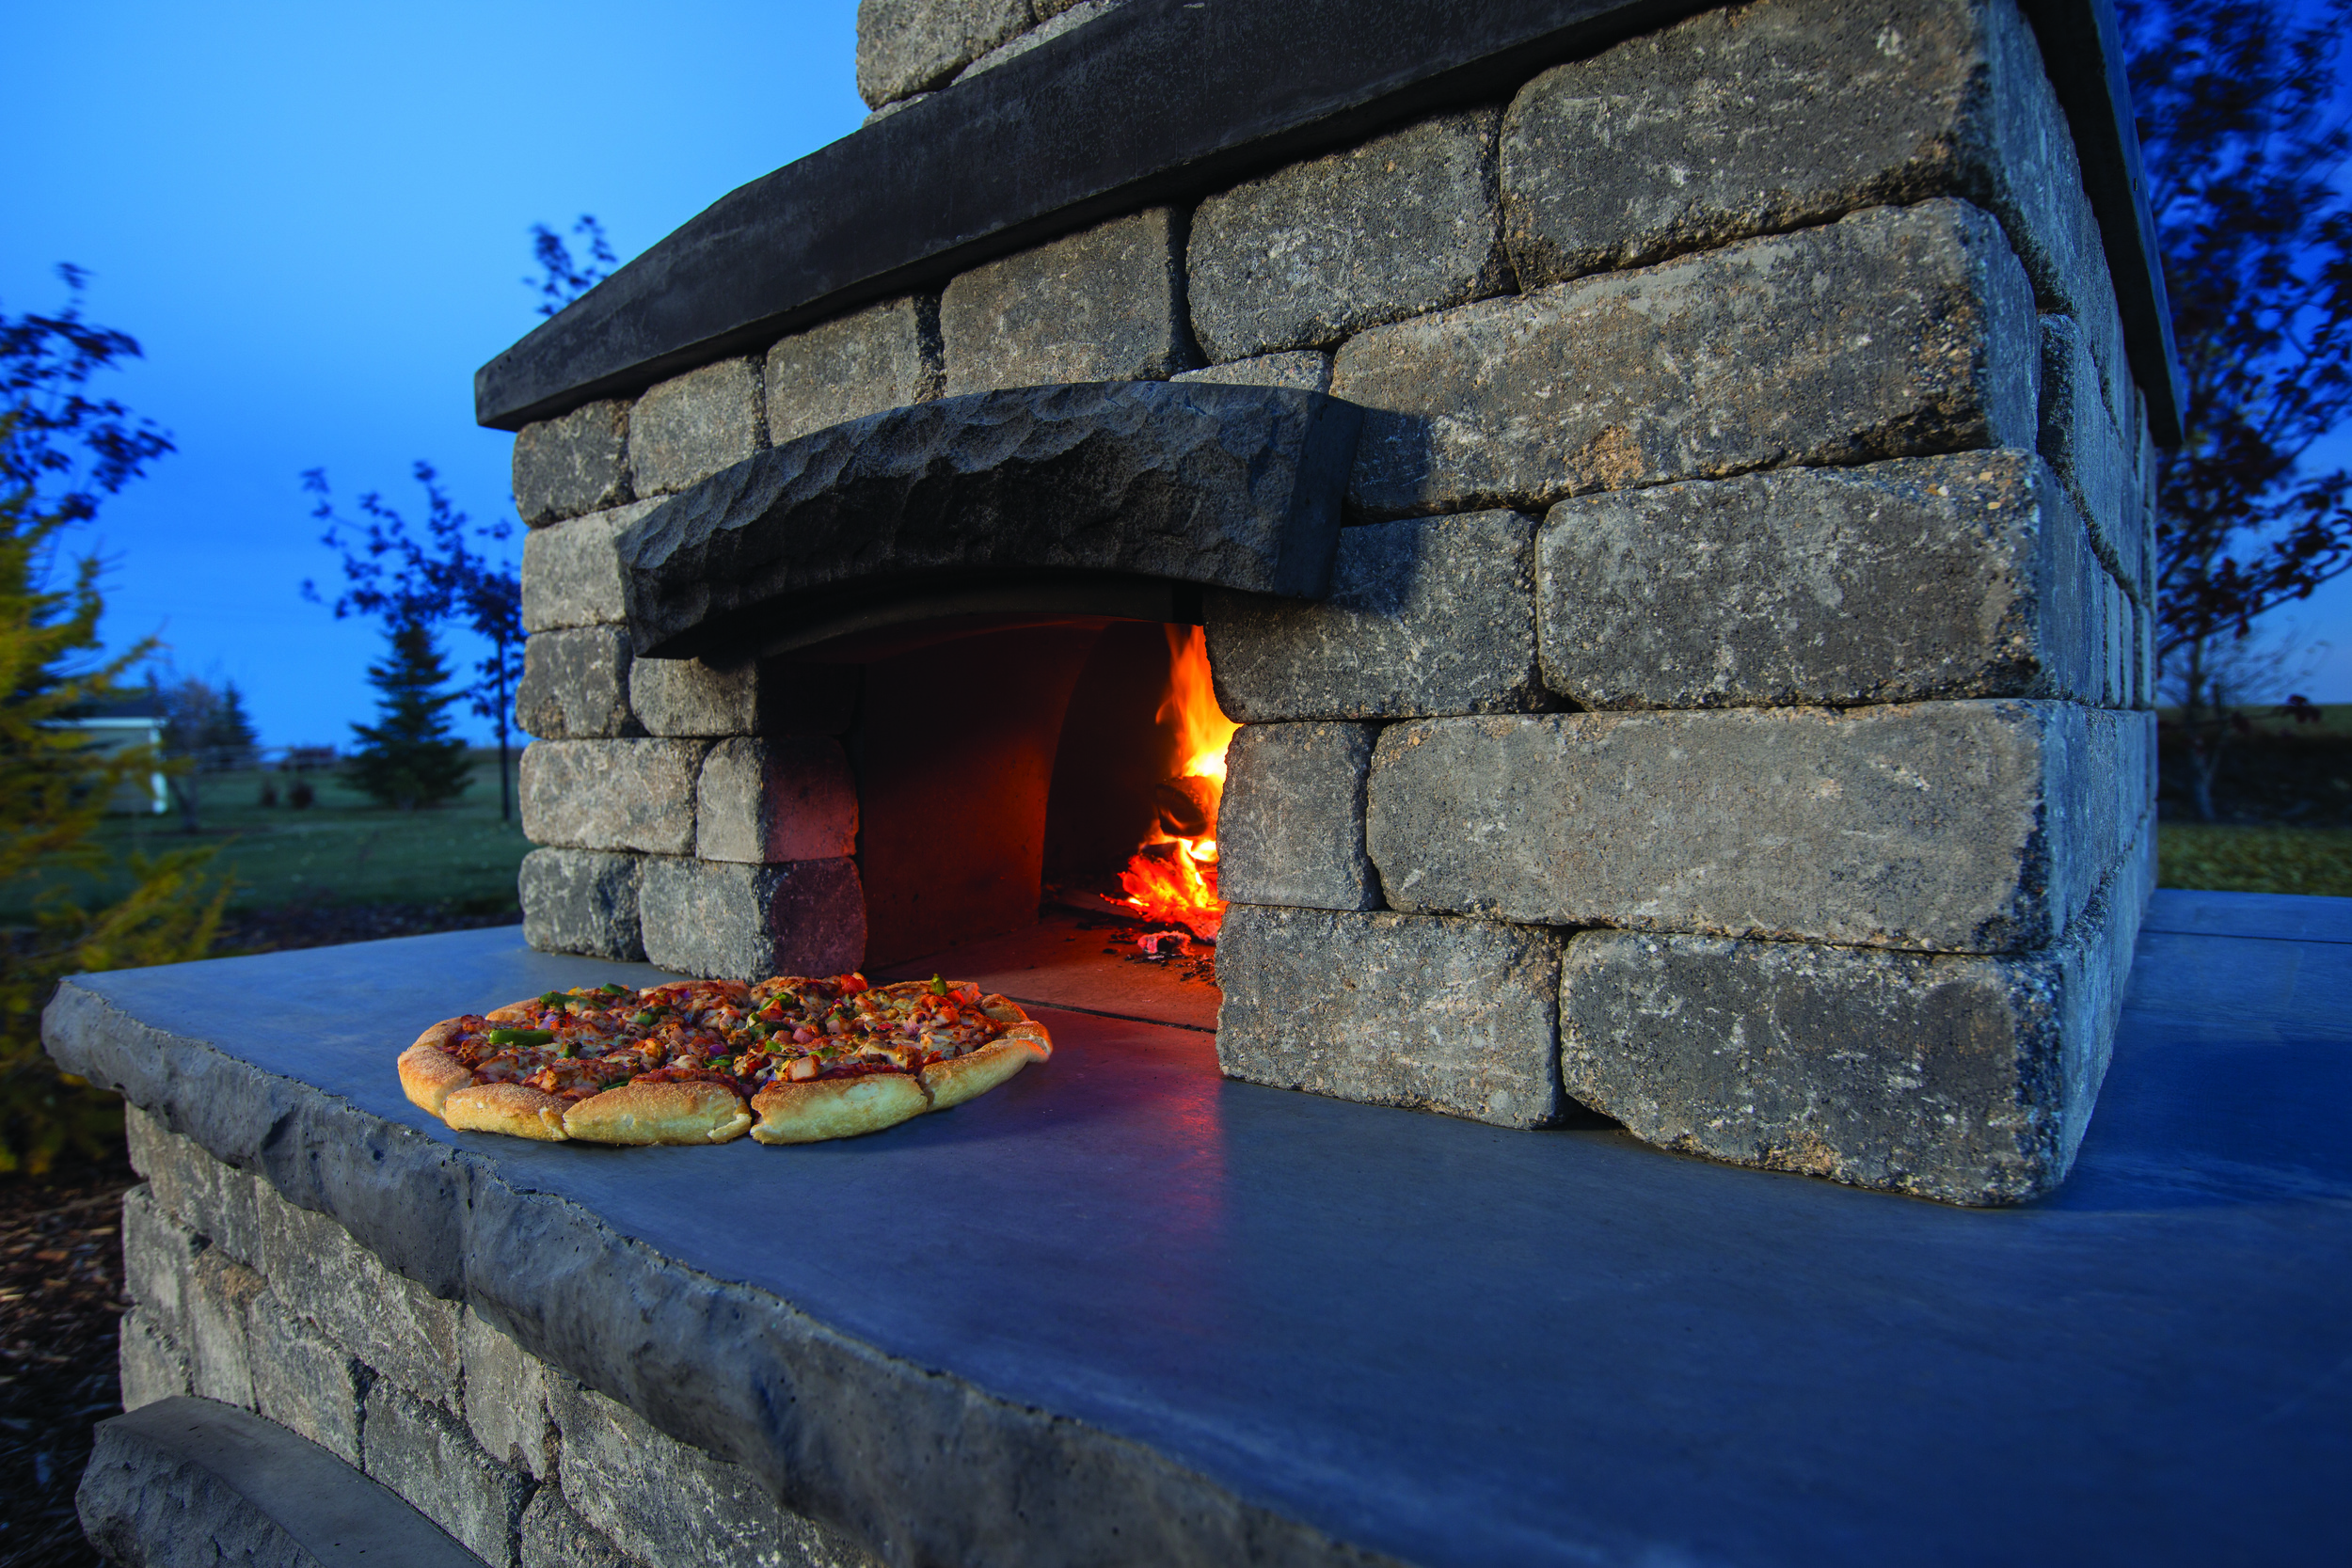 A: Pizza Oven